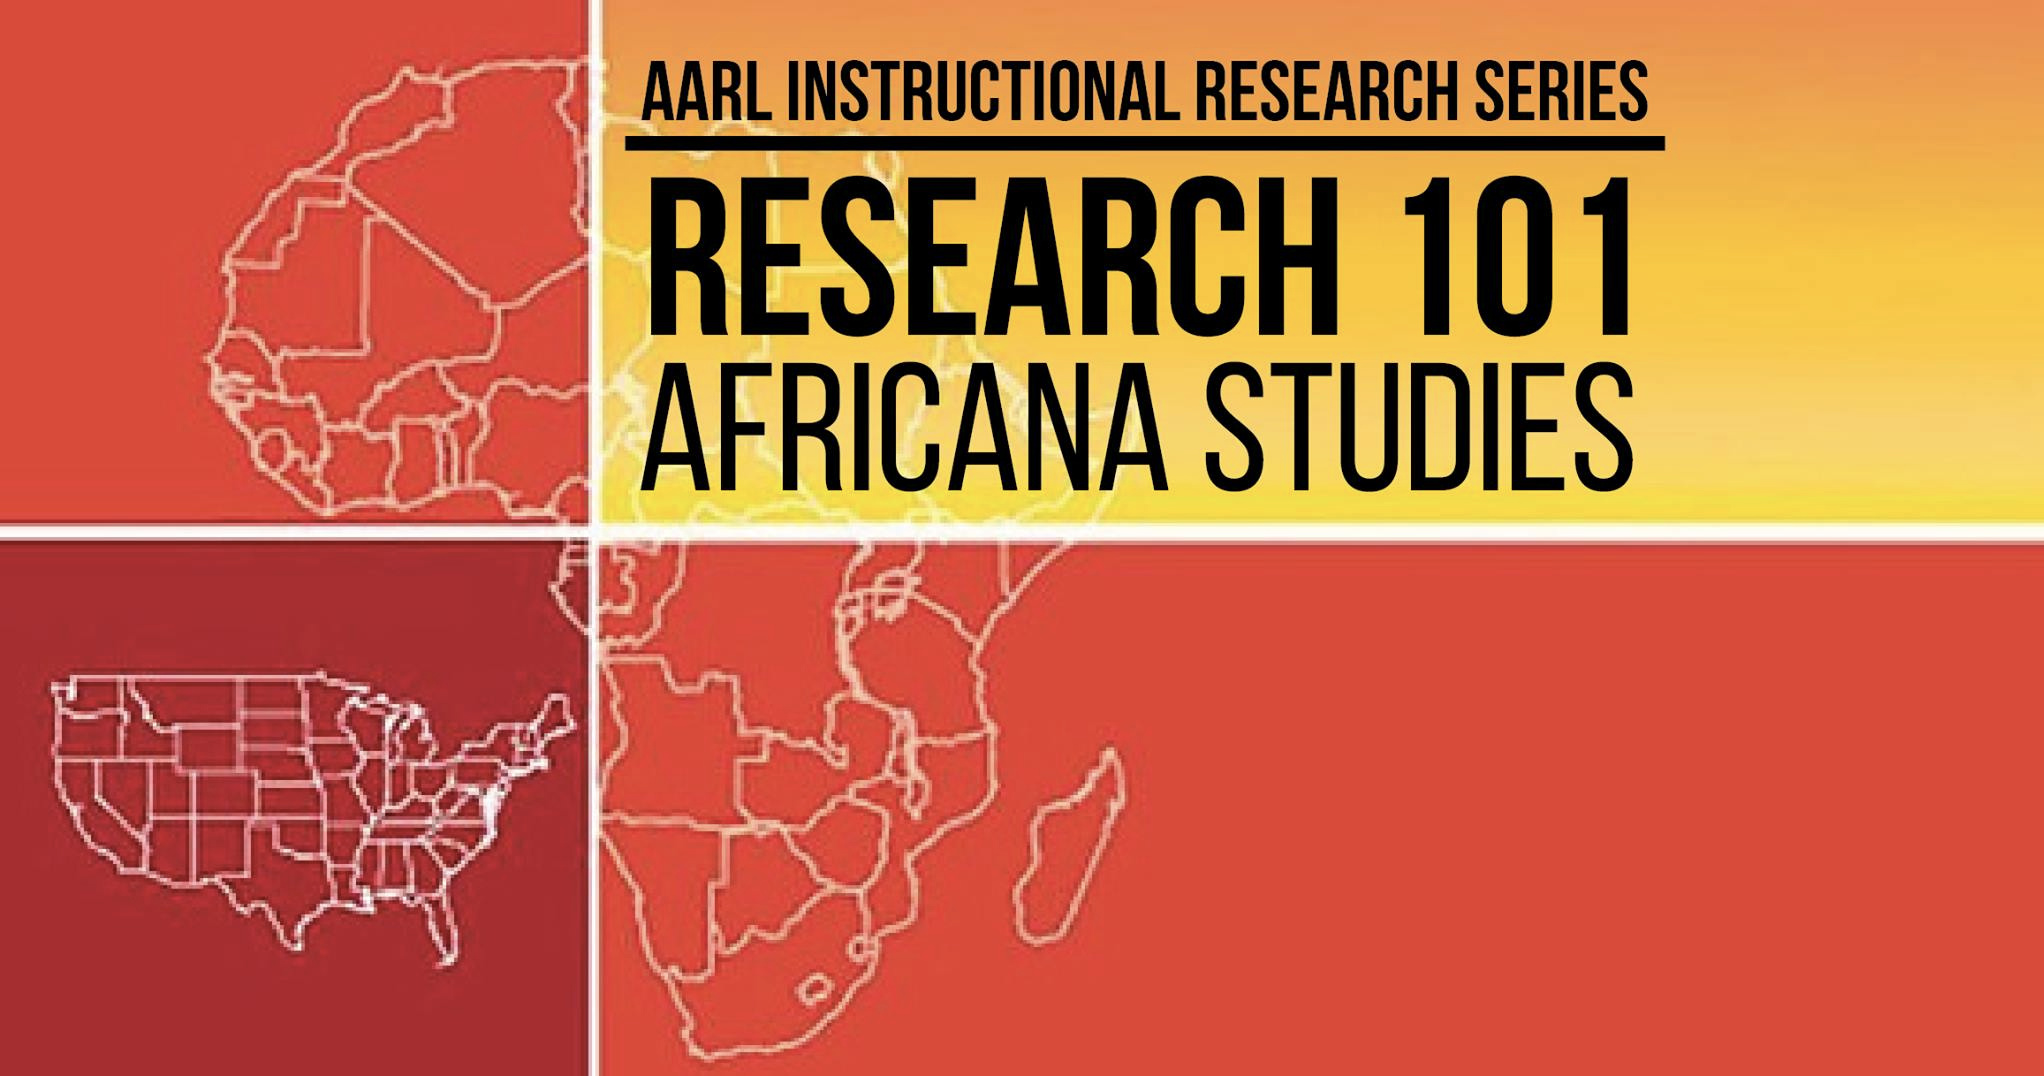 Instructional Series: Research 101